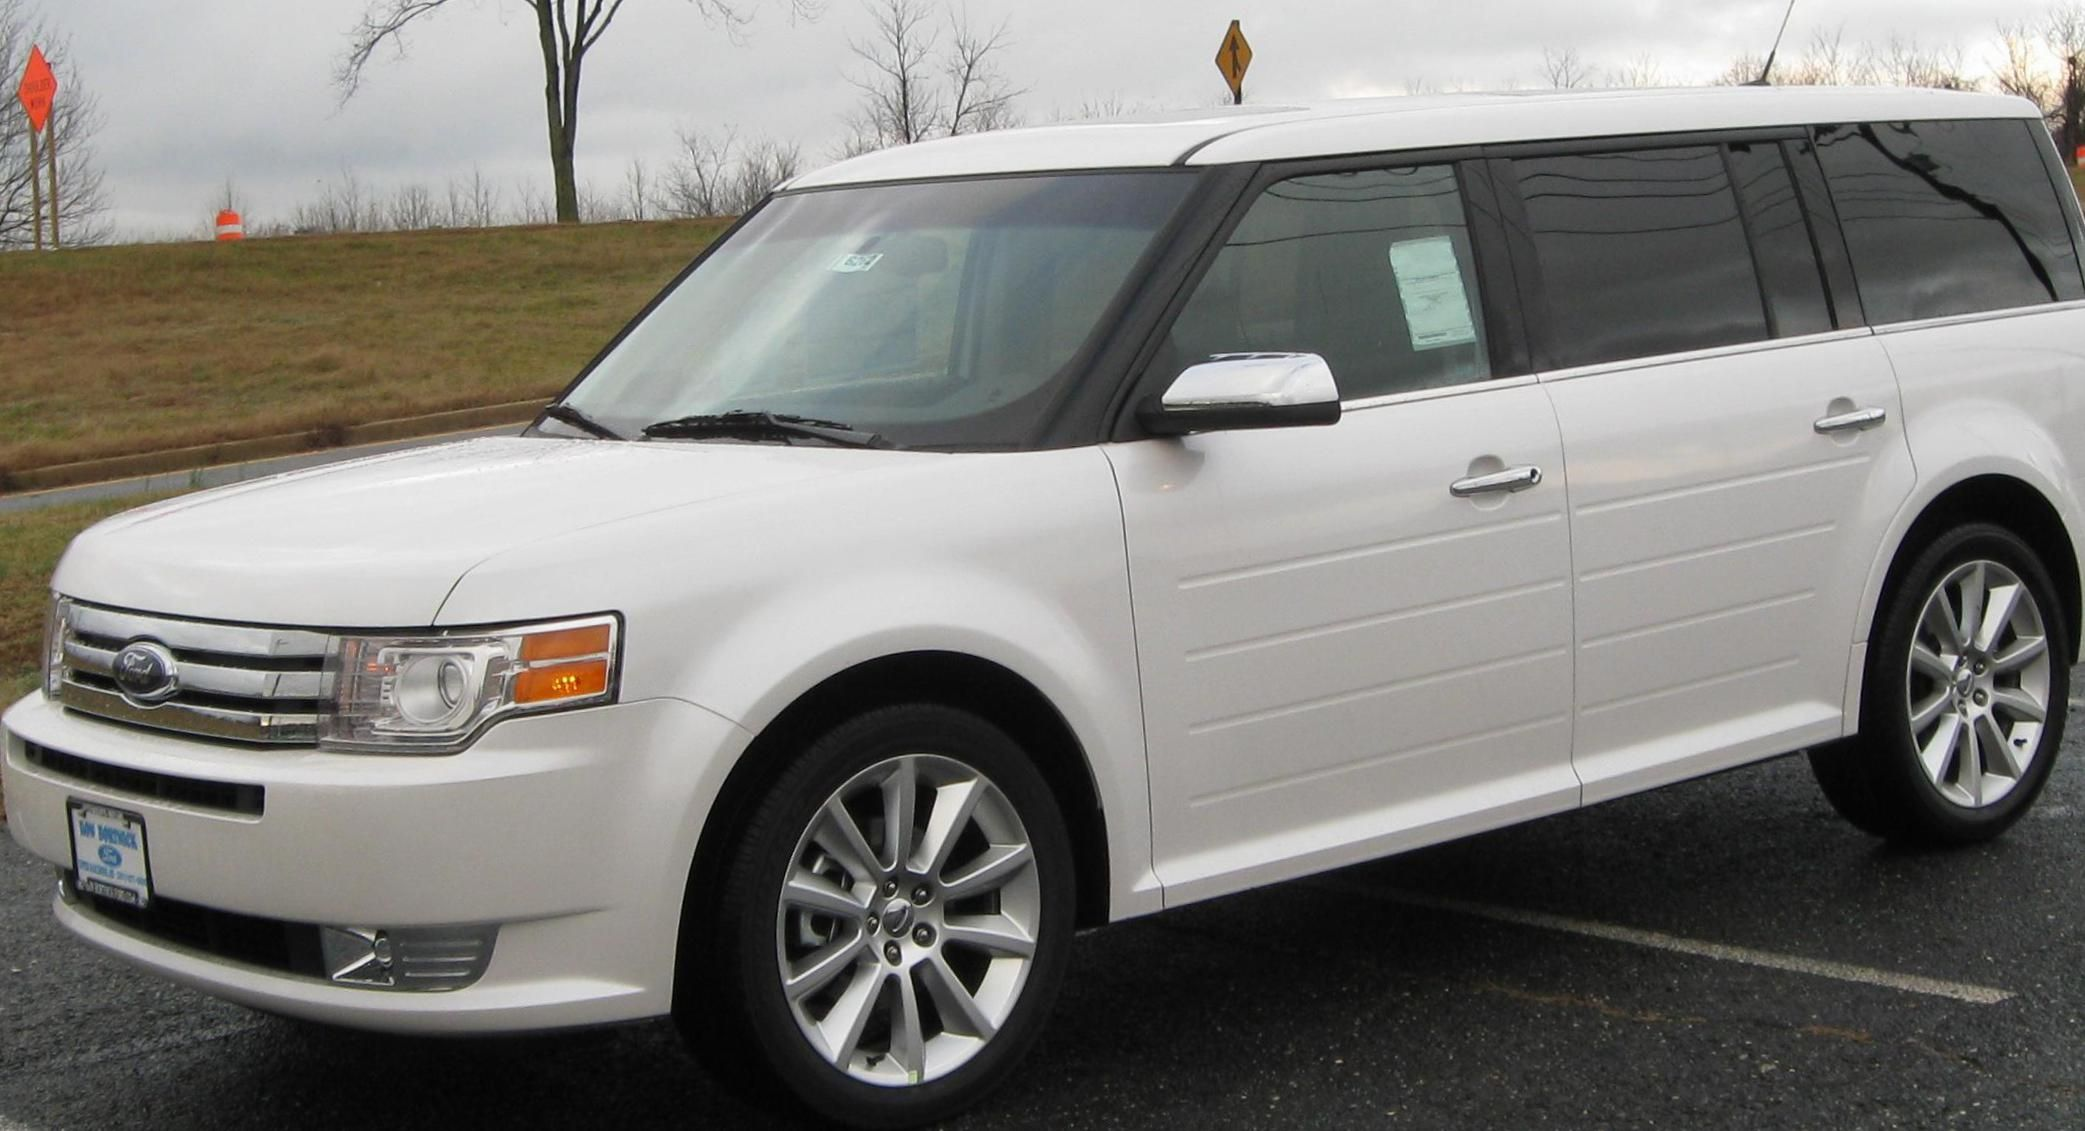 Pin By Brittany Cowley On Vroom Vroom Ford Flex Ford Car